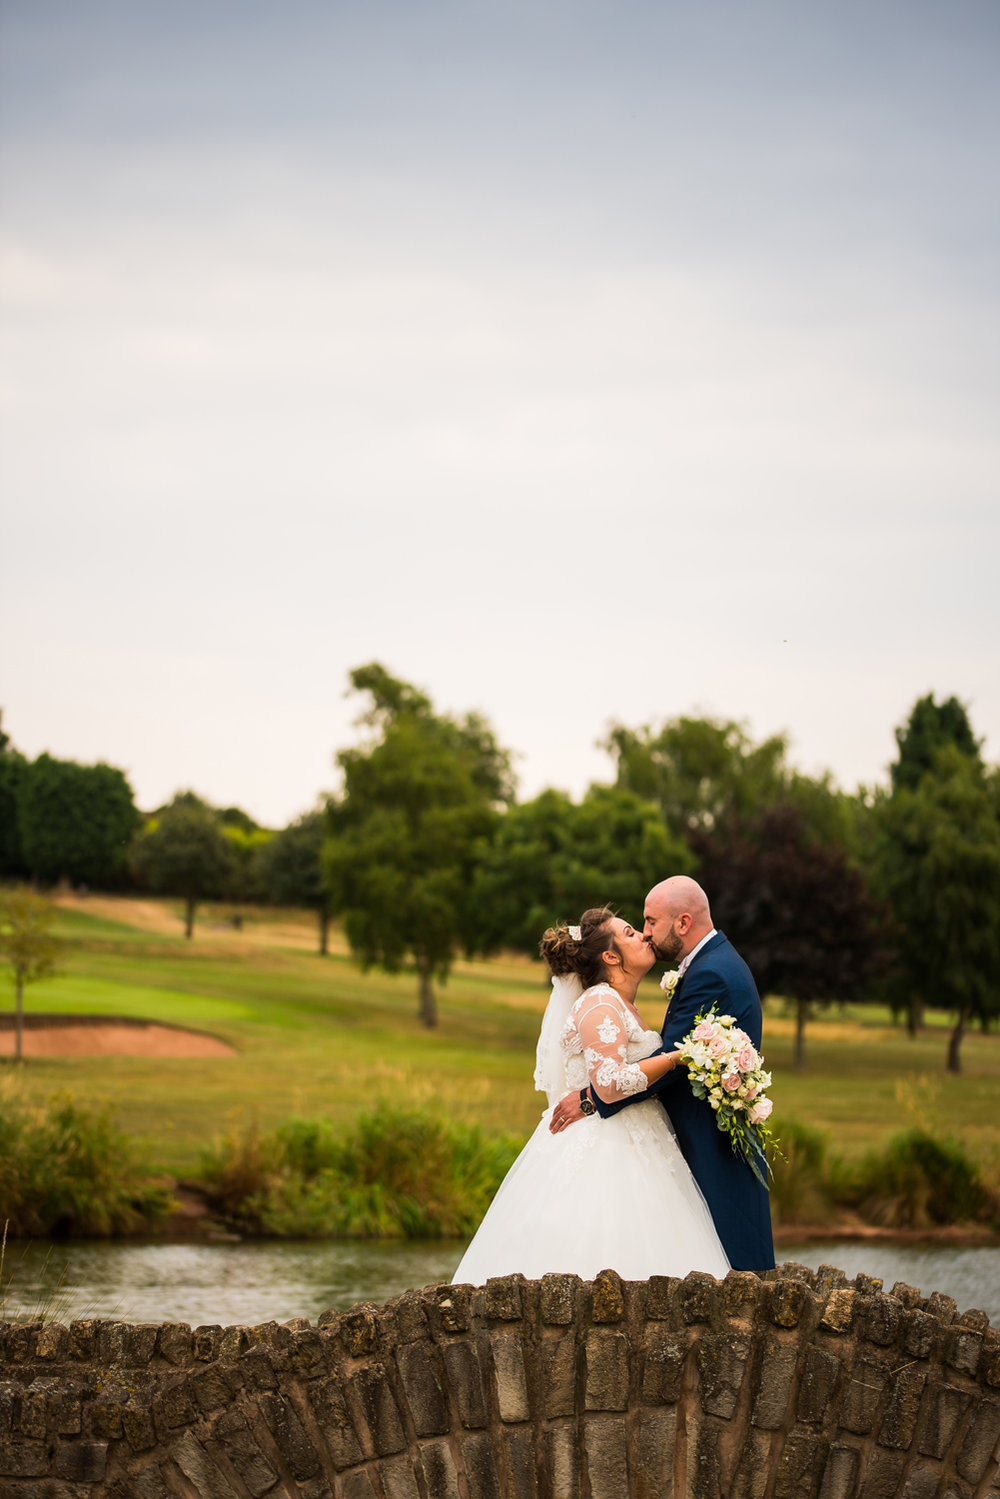 Roise and John wedding photos (316 of 383).jpg